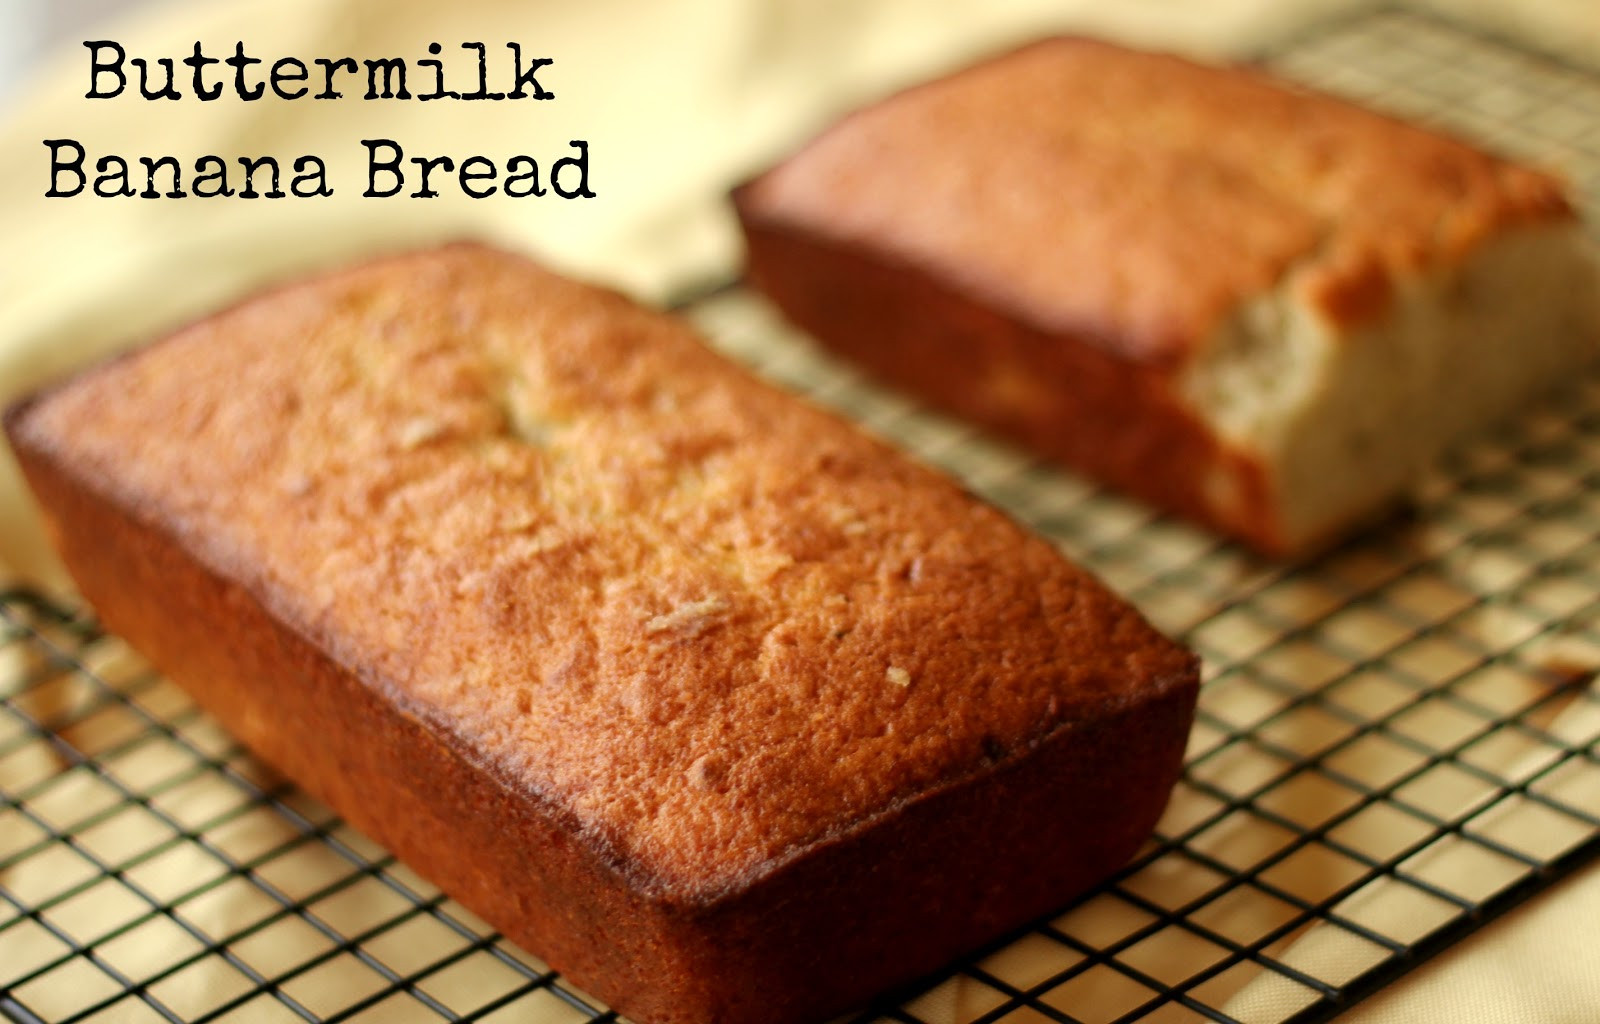 Banana Bread Buttermilk  The Unsophisticated Kitchen Buttermilk Banana Bread The